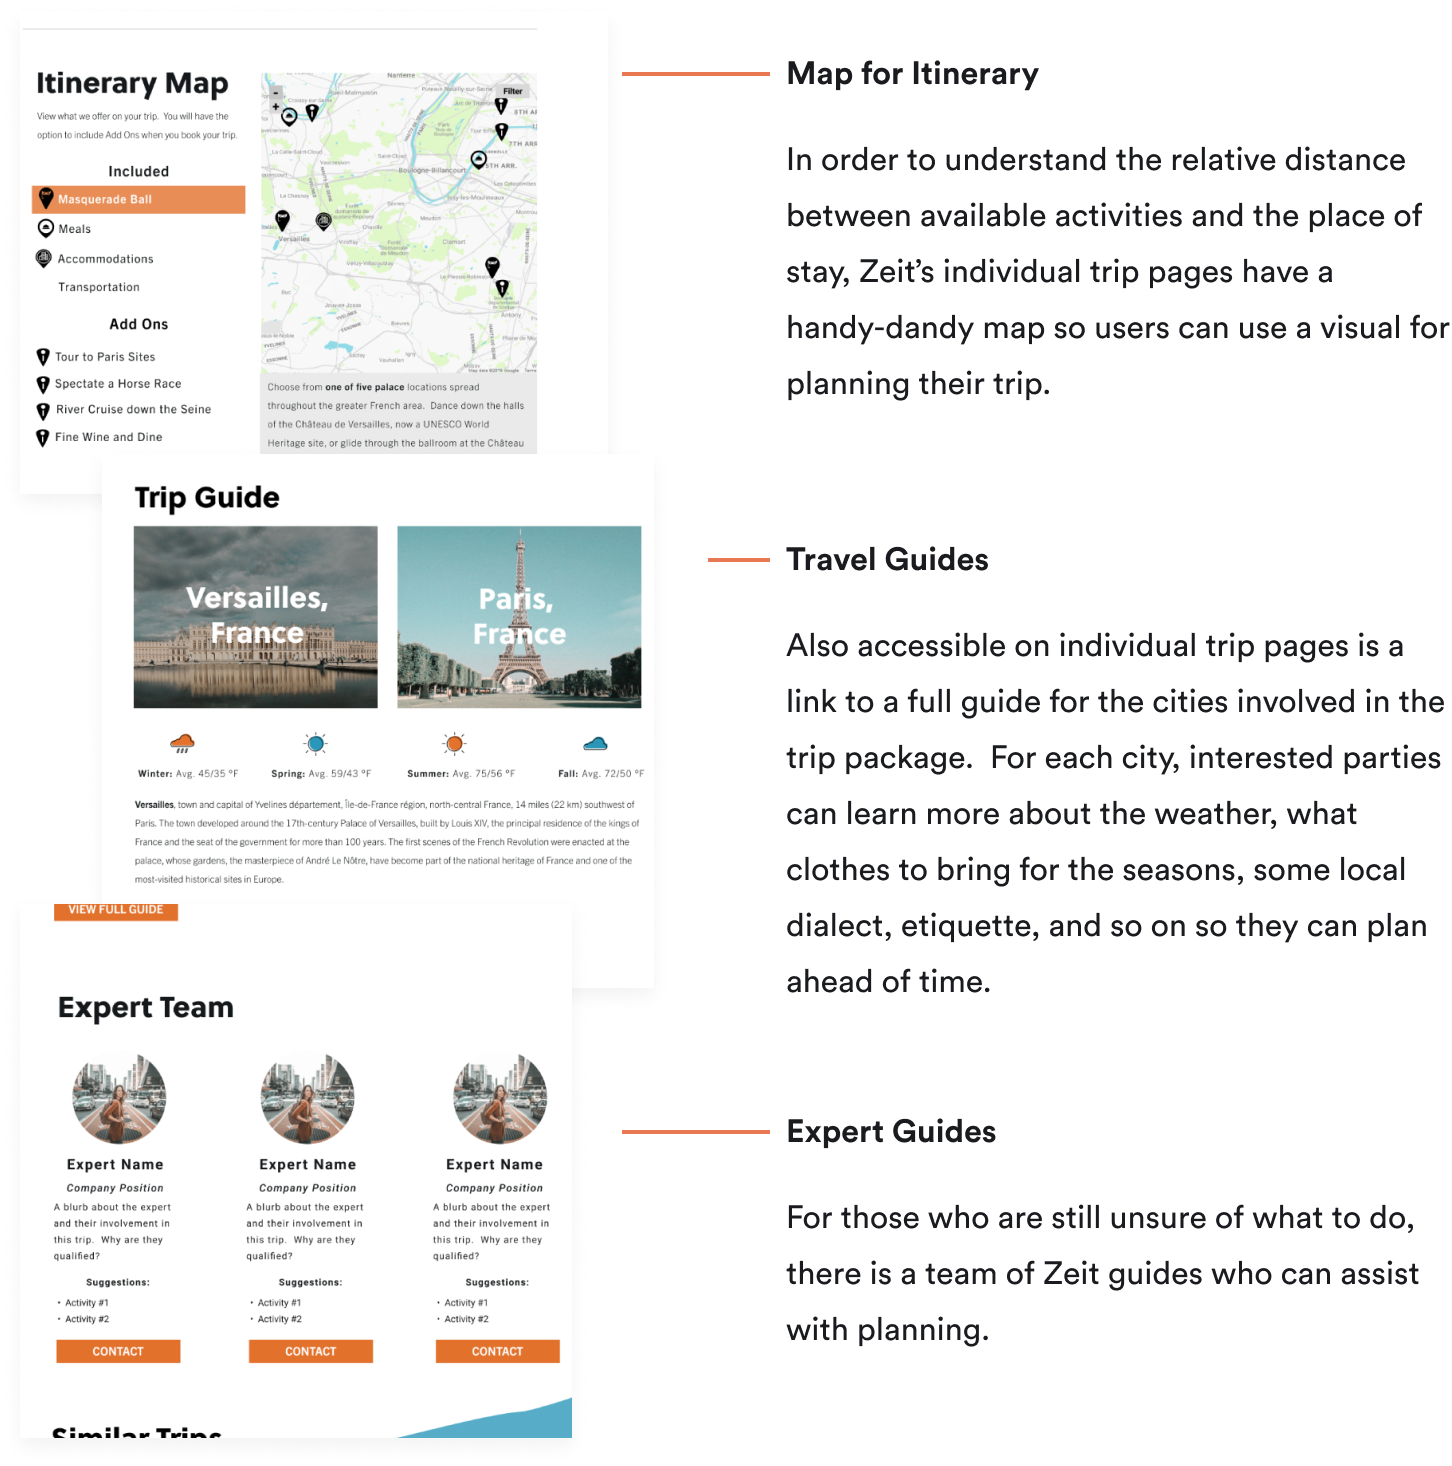 Picture of Zeit's Pages for Easier Trip Planning